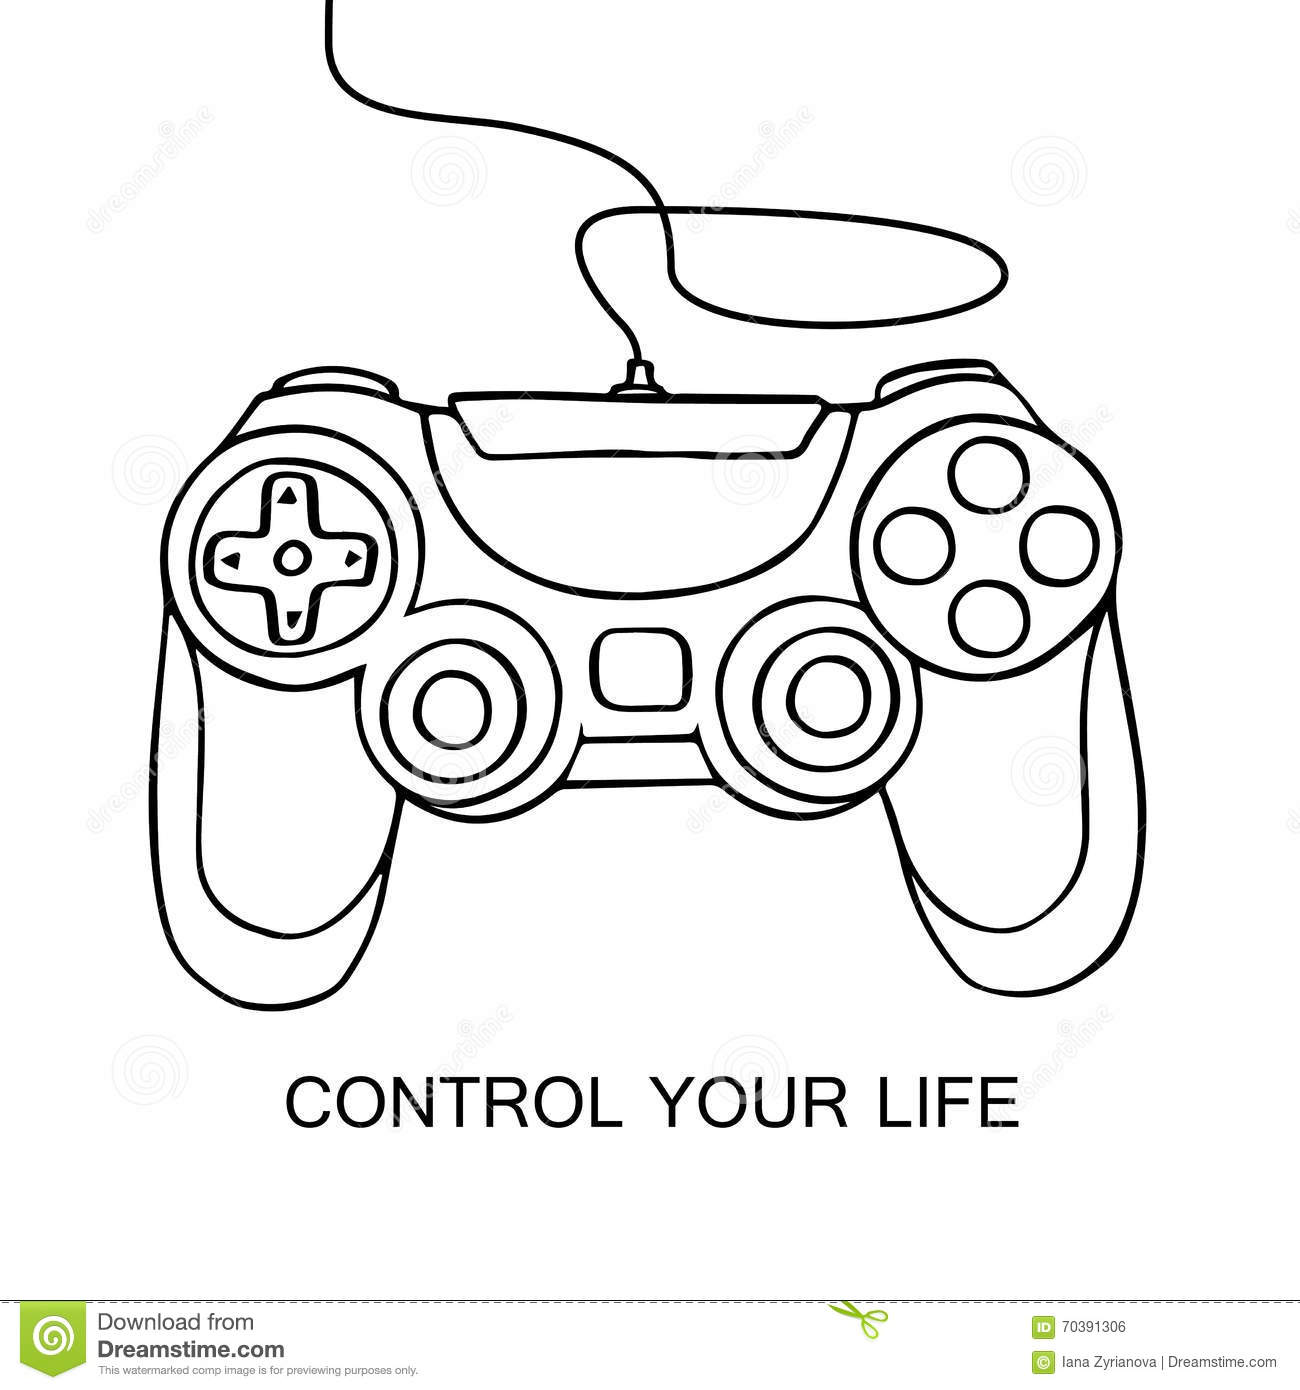 Gamepad Sketch Icon Hand Drawn Vector Illustration Isolated On White Background Control Your